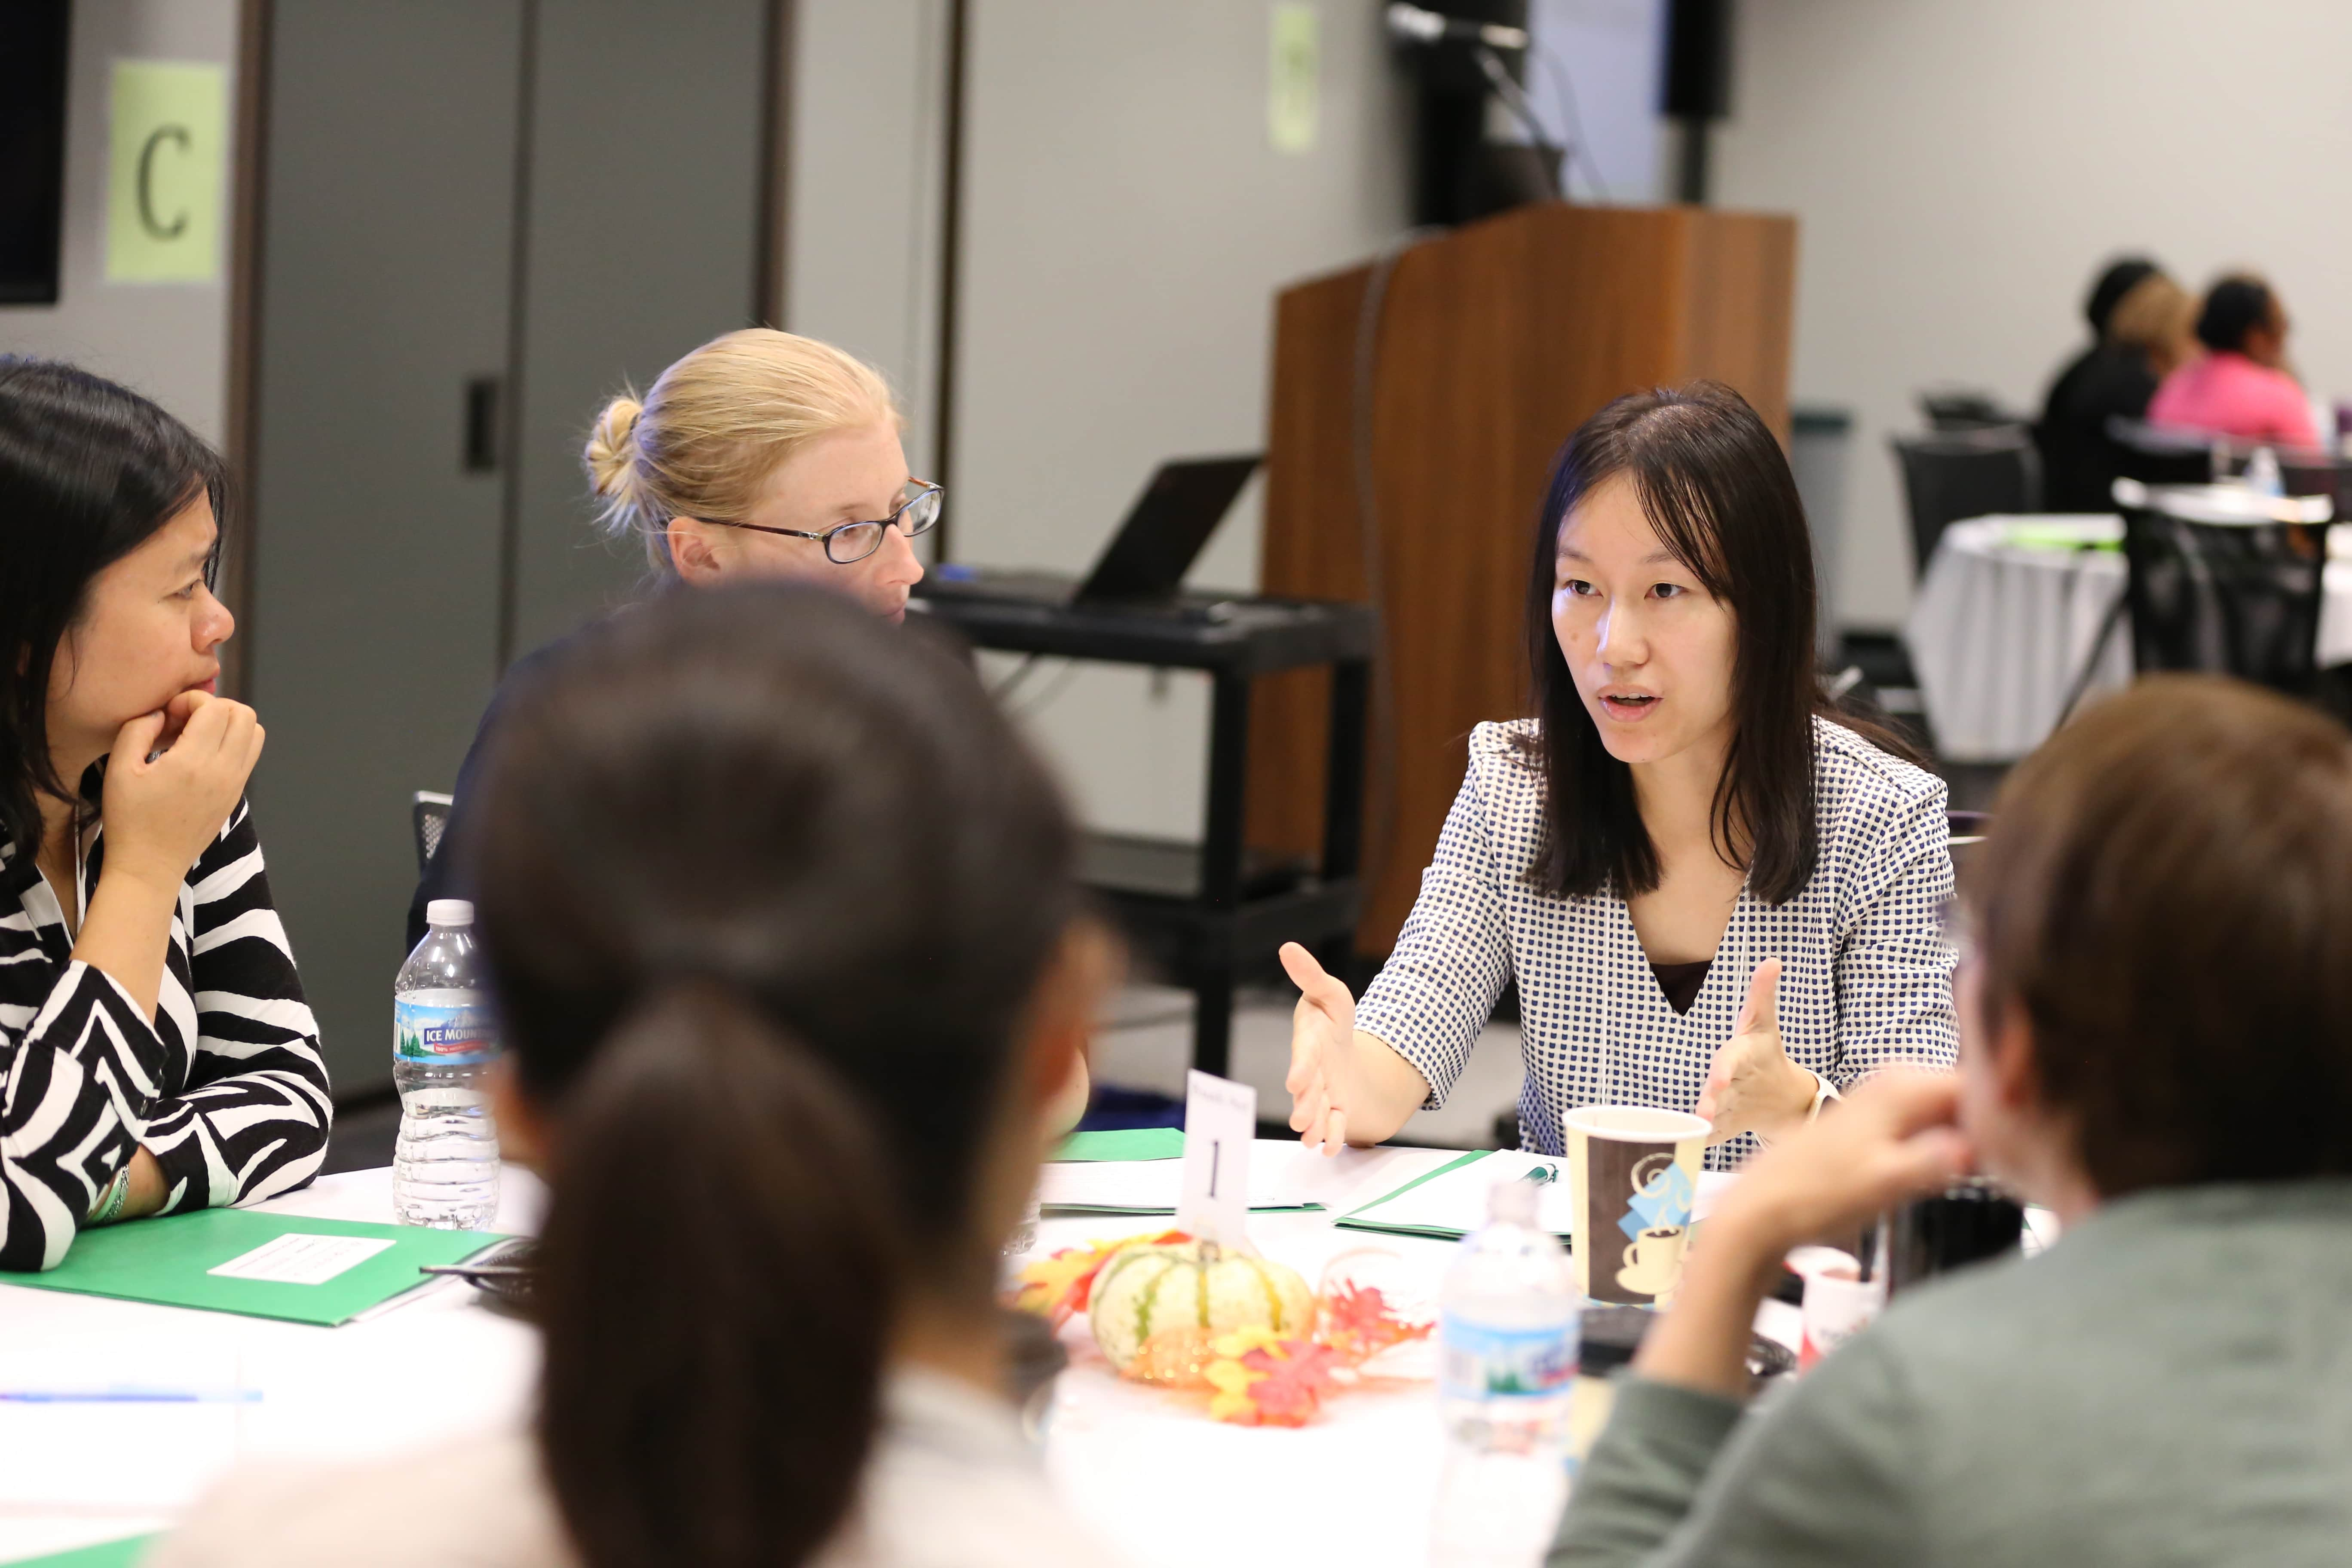 Jingbo Meng, an assistant professor of Communication at Michigan State University, talking with other researchers at the Trifecta kick off meeting.